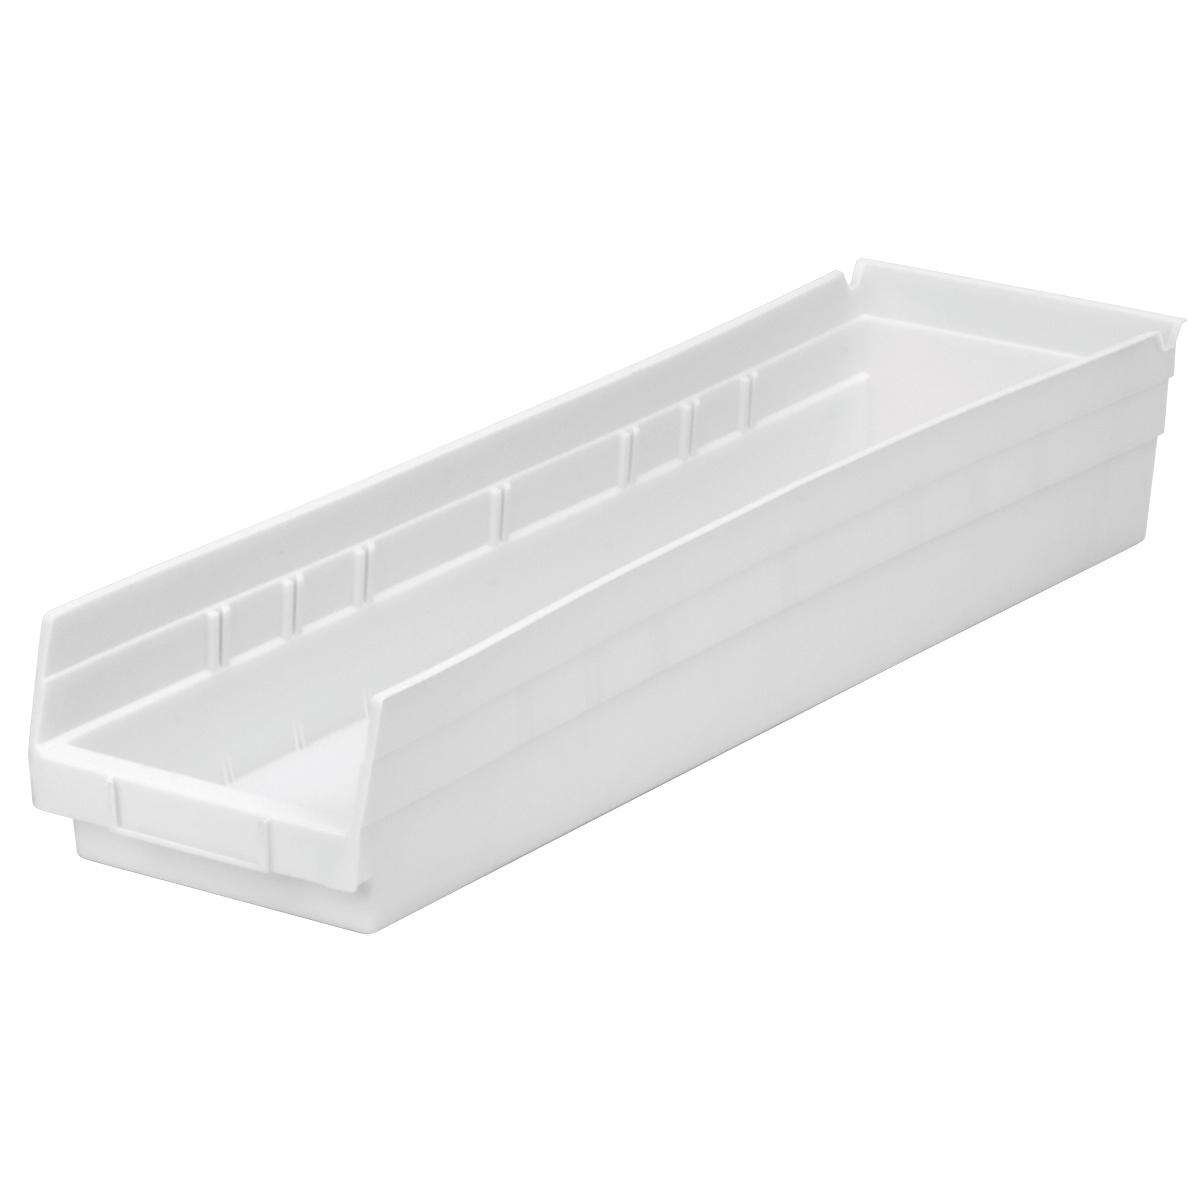 Shelf Bin 23-5/8 x 6-5/8 x 4, White (30164WHITE).  This item sold in carton quantities of 6.